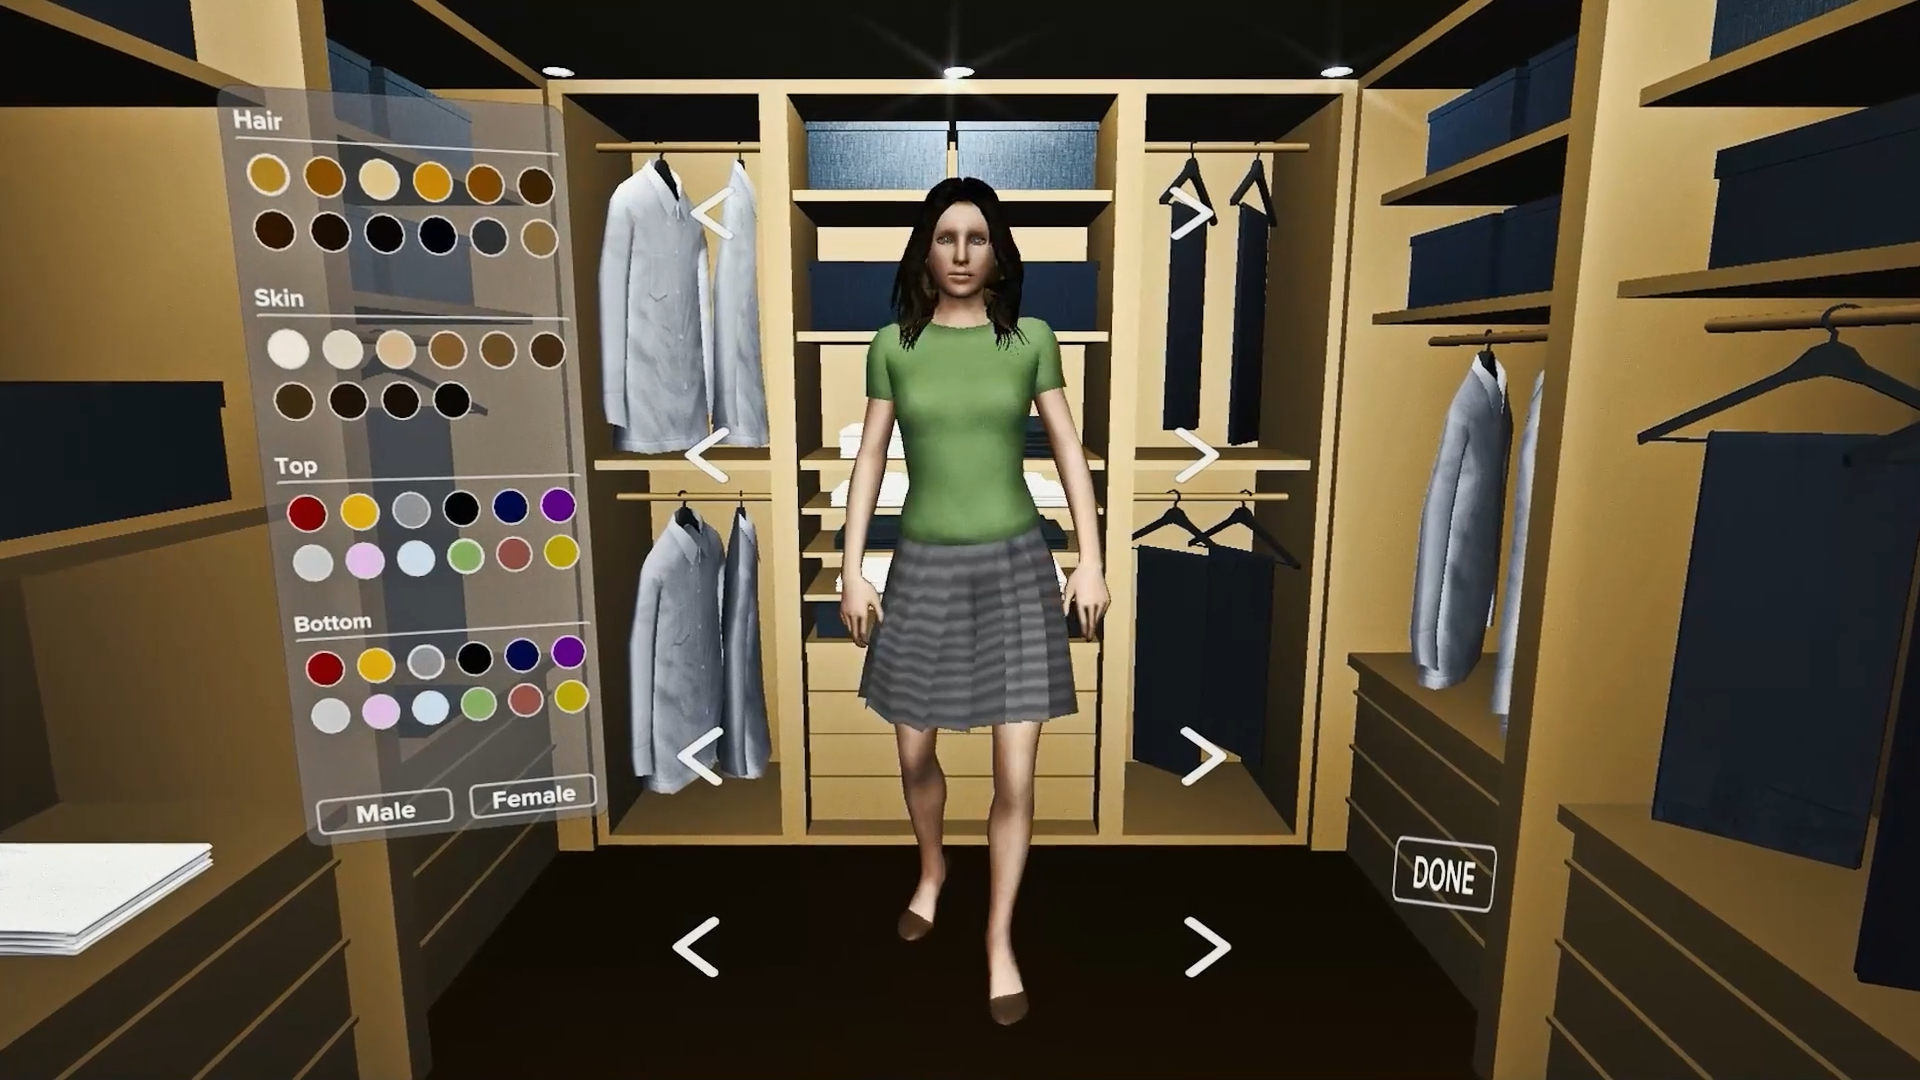 Each attendee creates their own, personal avatar to move through the virtual world with.